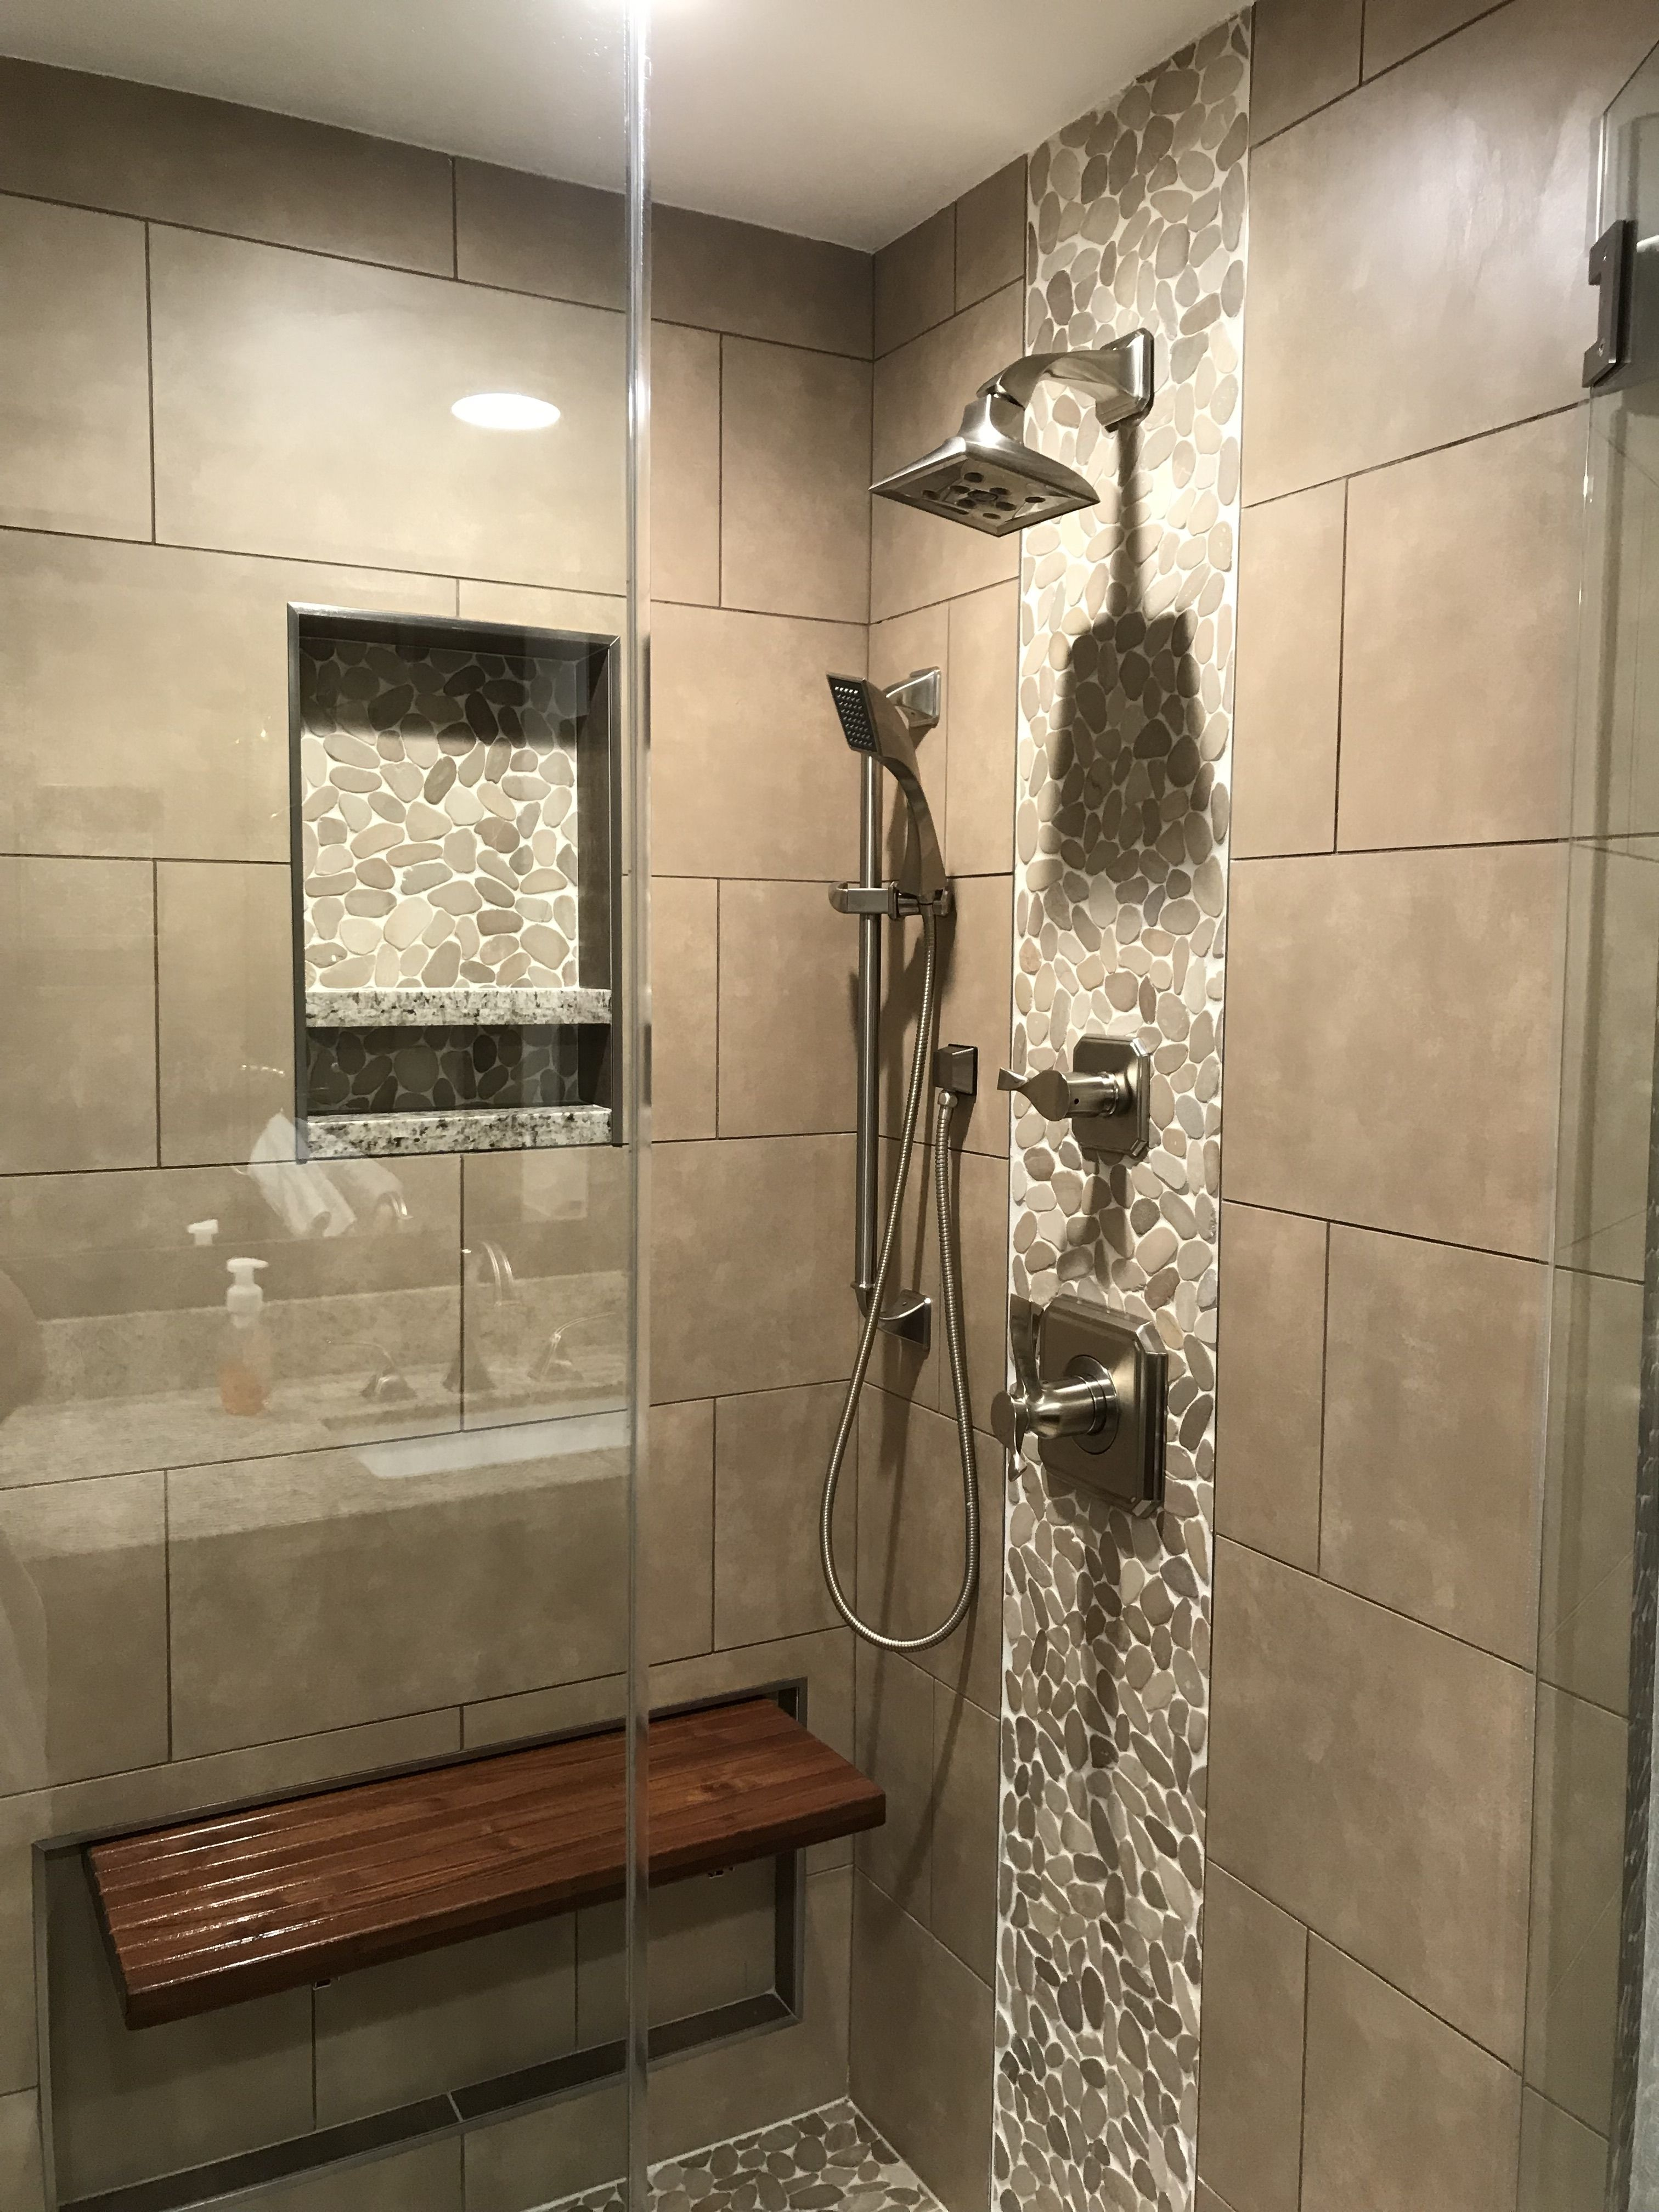 Great looking bathroom shower remodel with Sliced pebble mosaics and ...